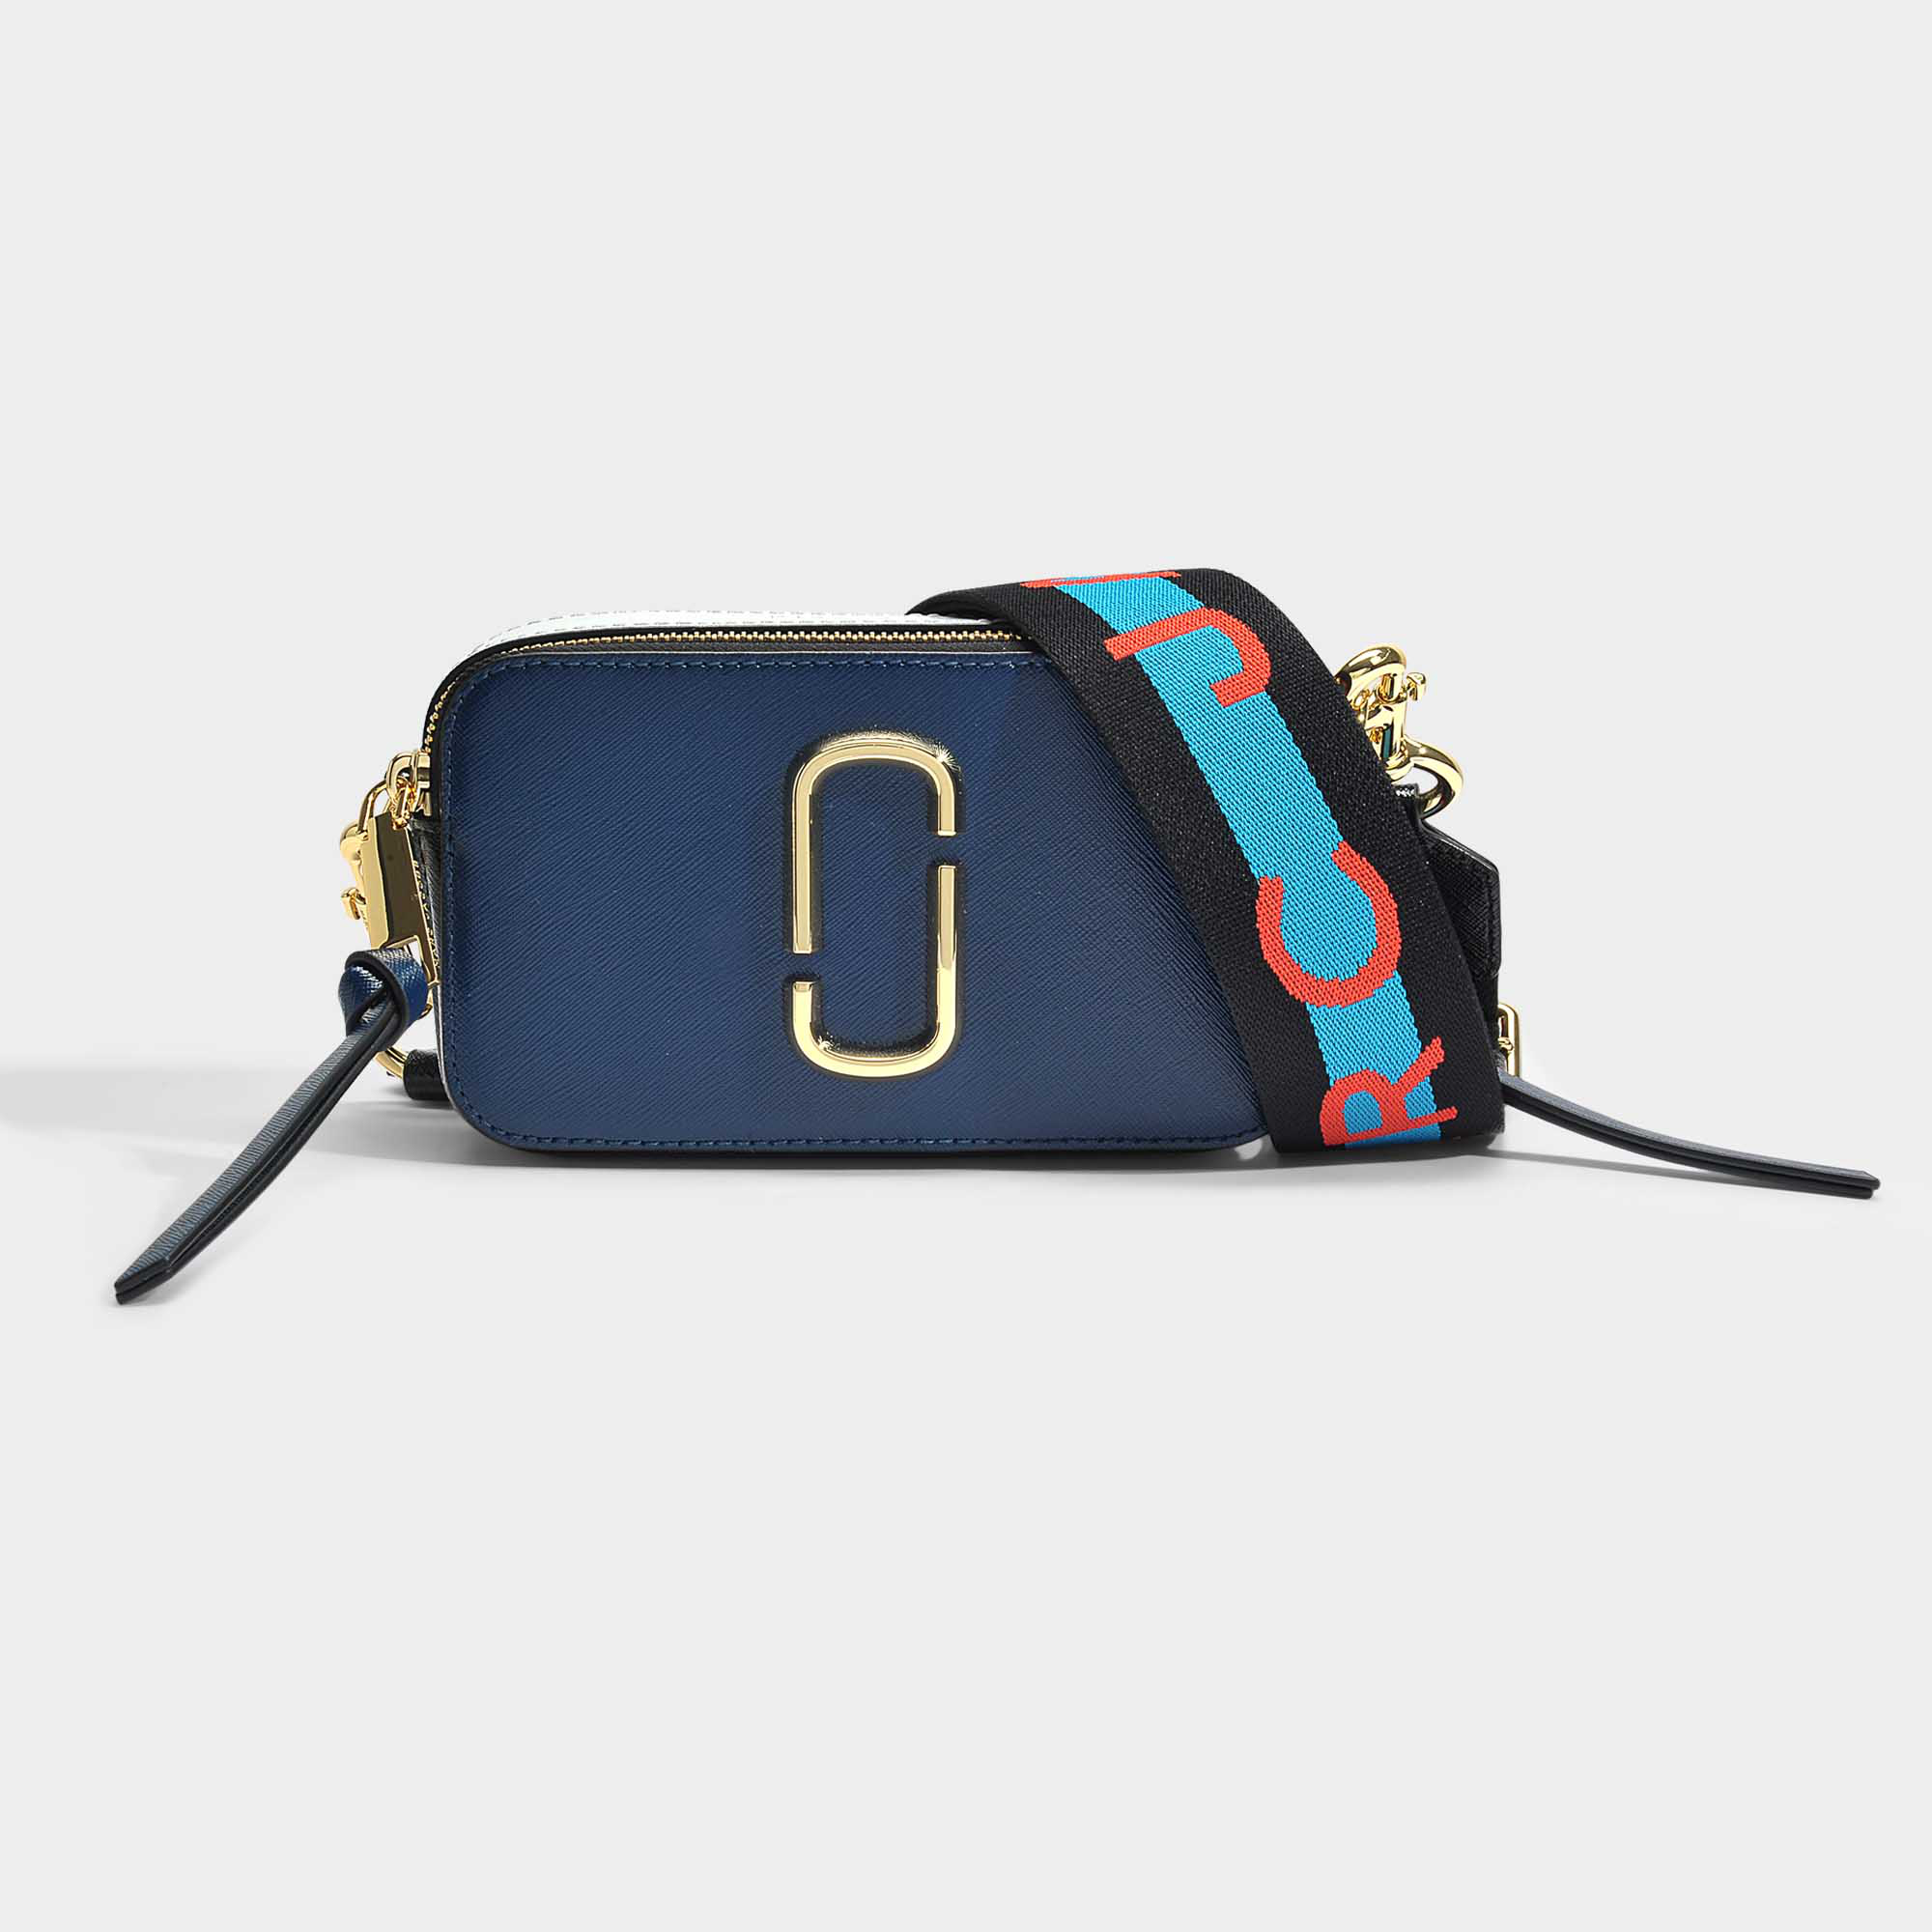 97455f36025 Marc Jacobs   Snapshot Bag In Blue Leather   ModeSens